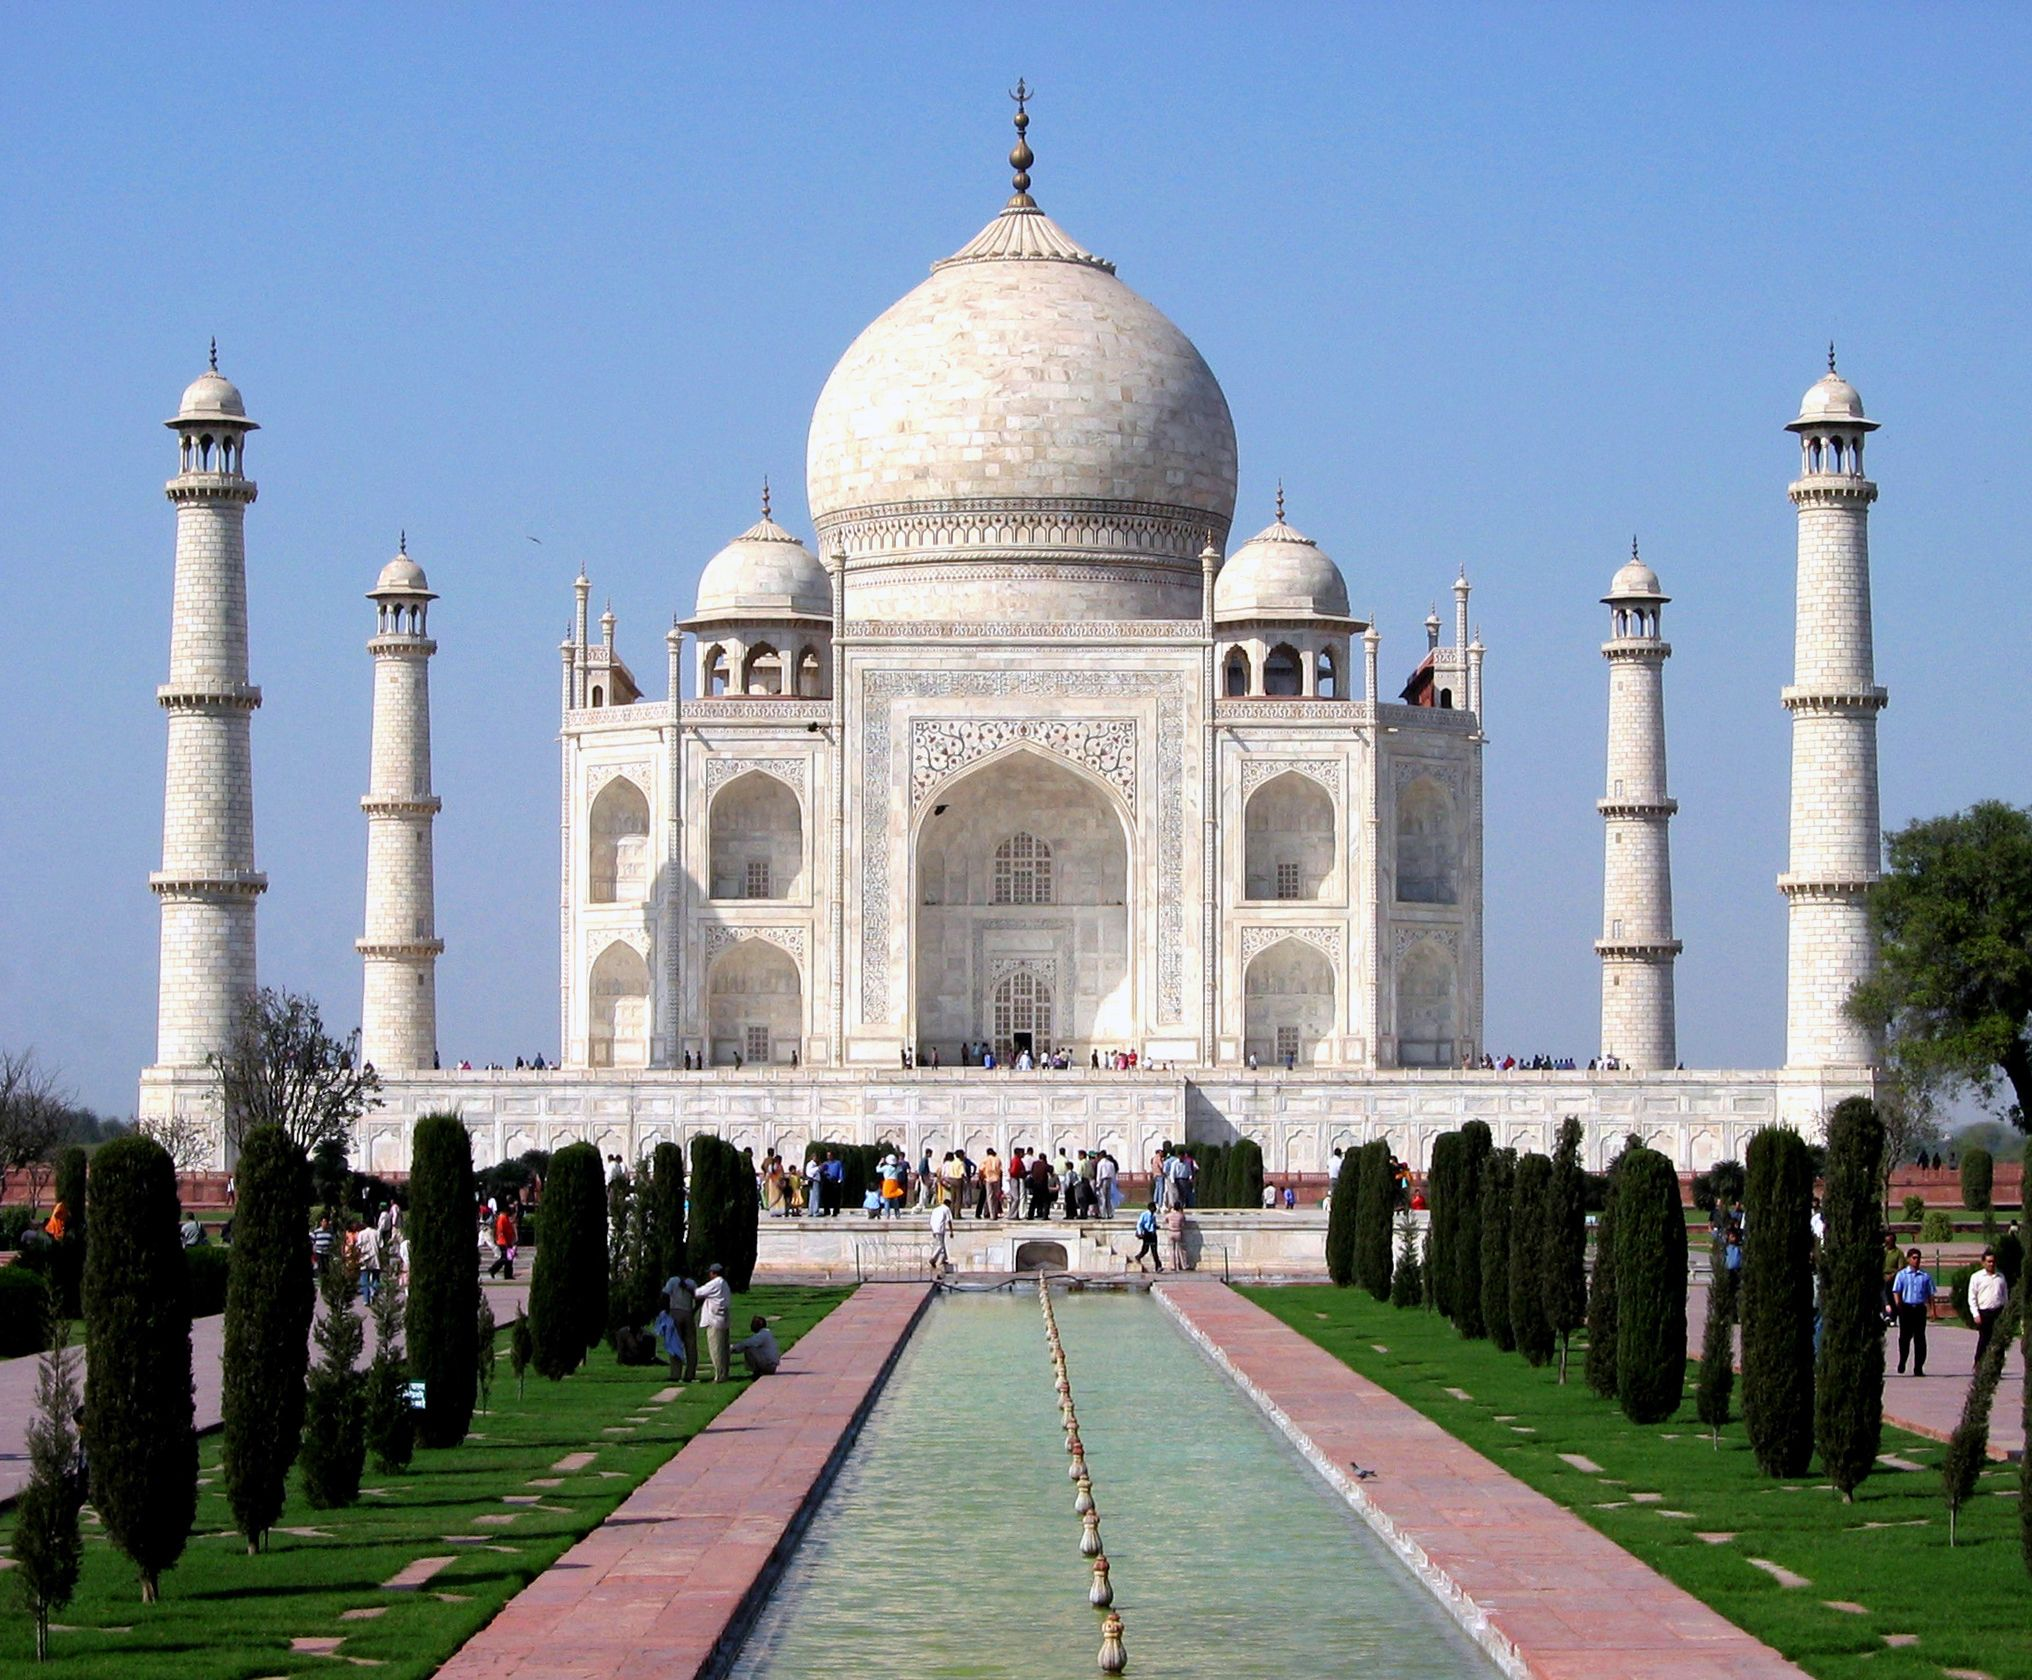 What is the Most Popular Golden Triangle Tour